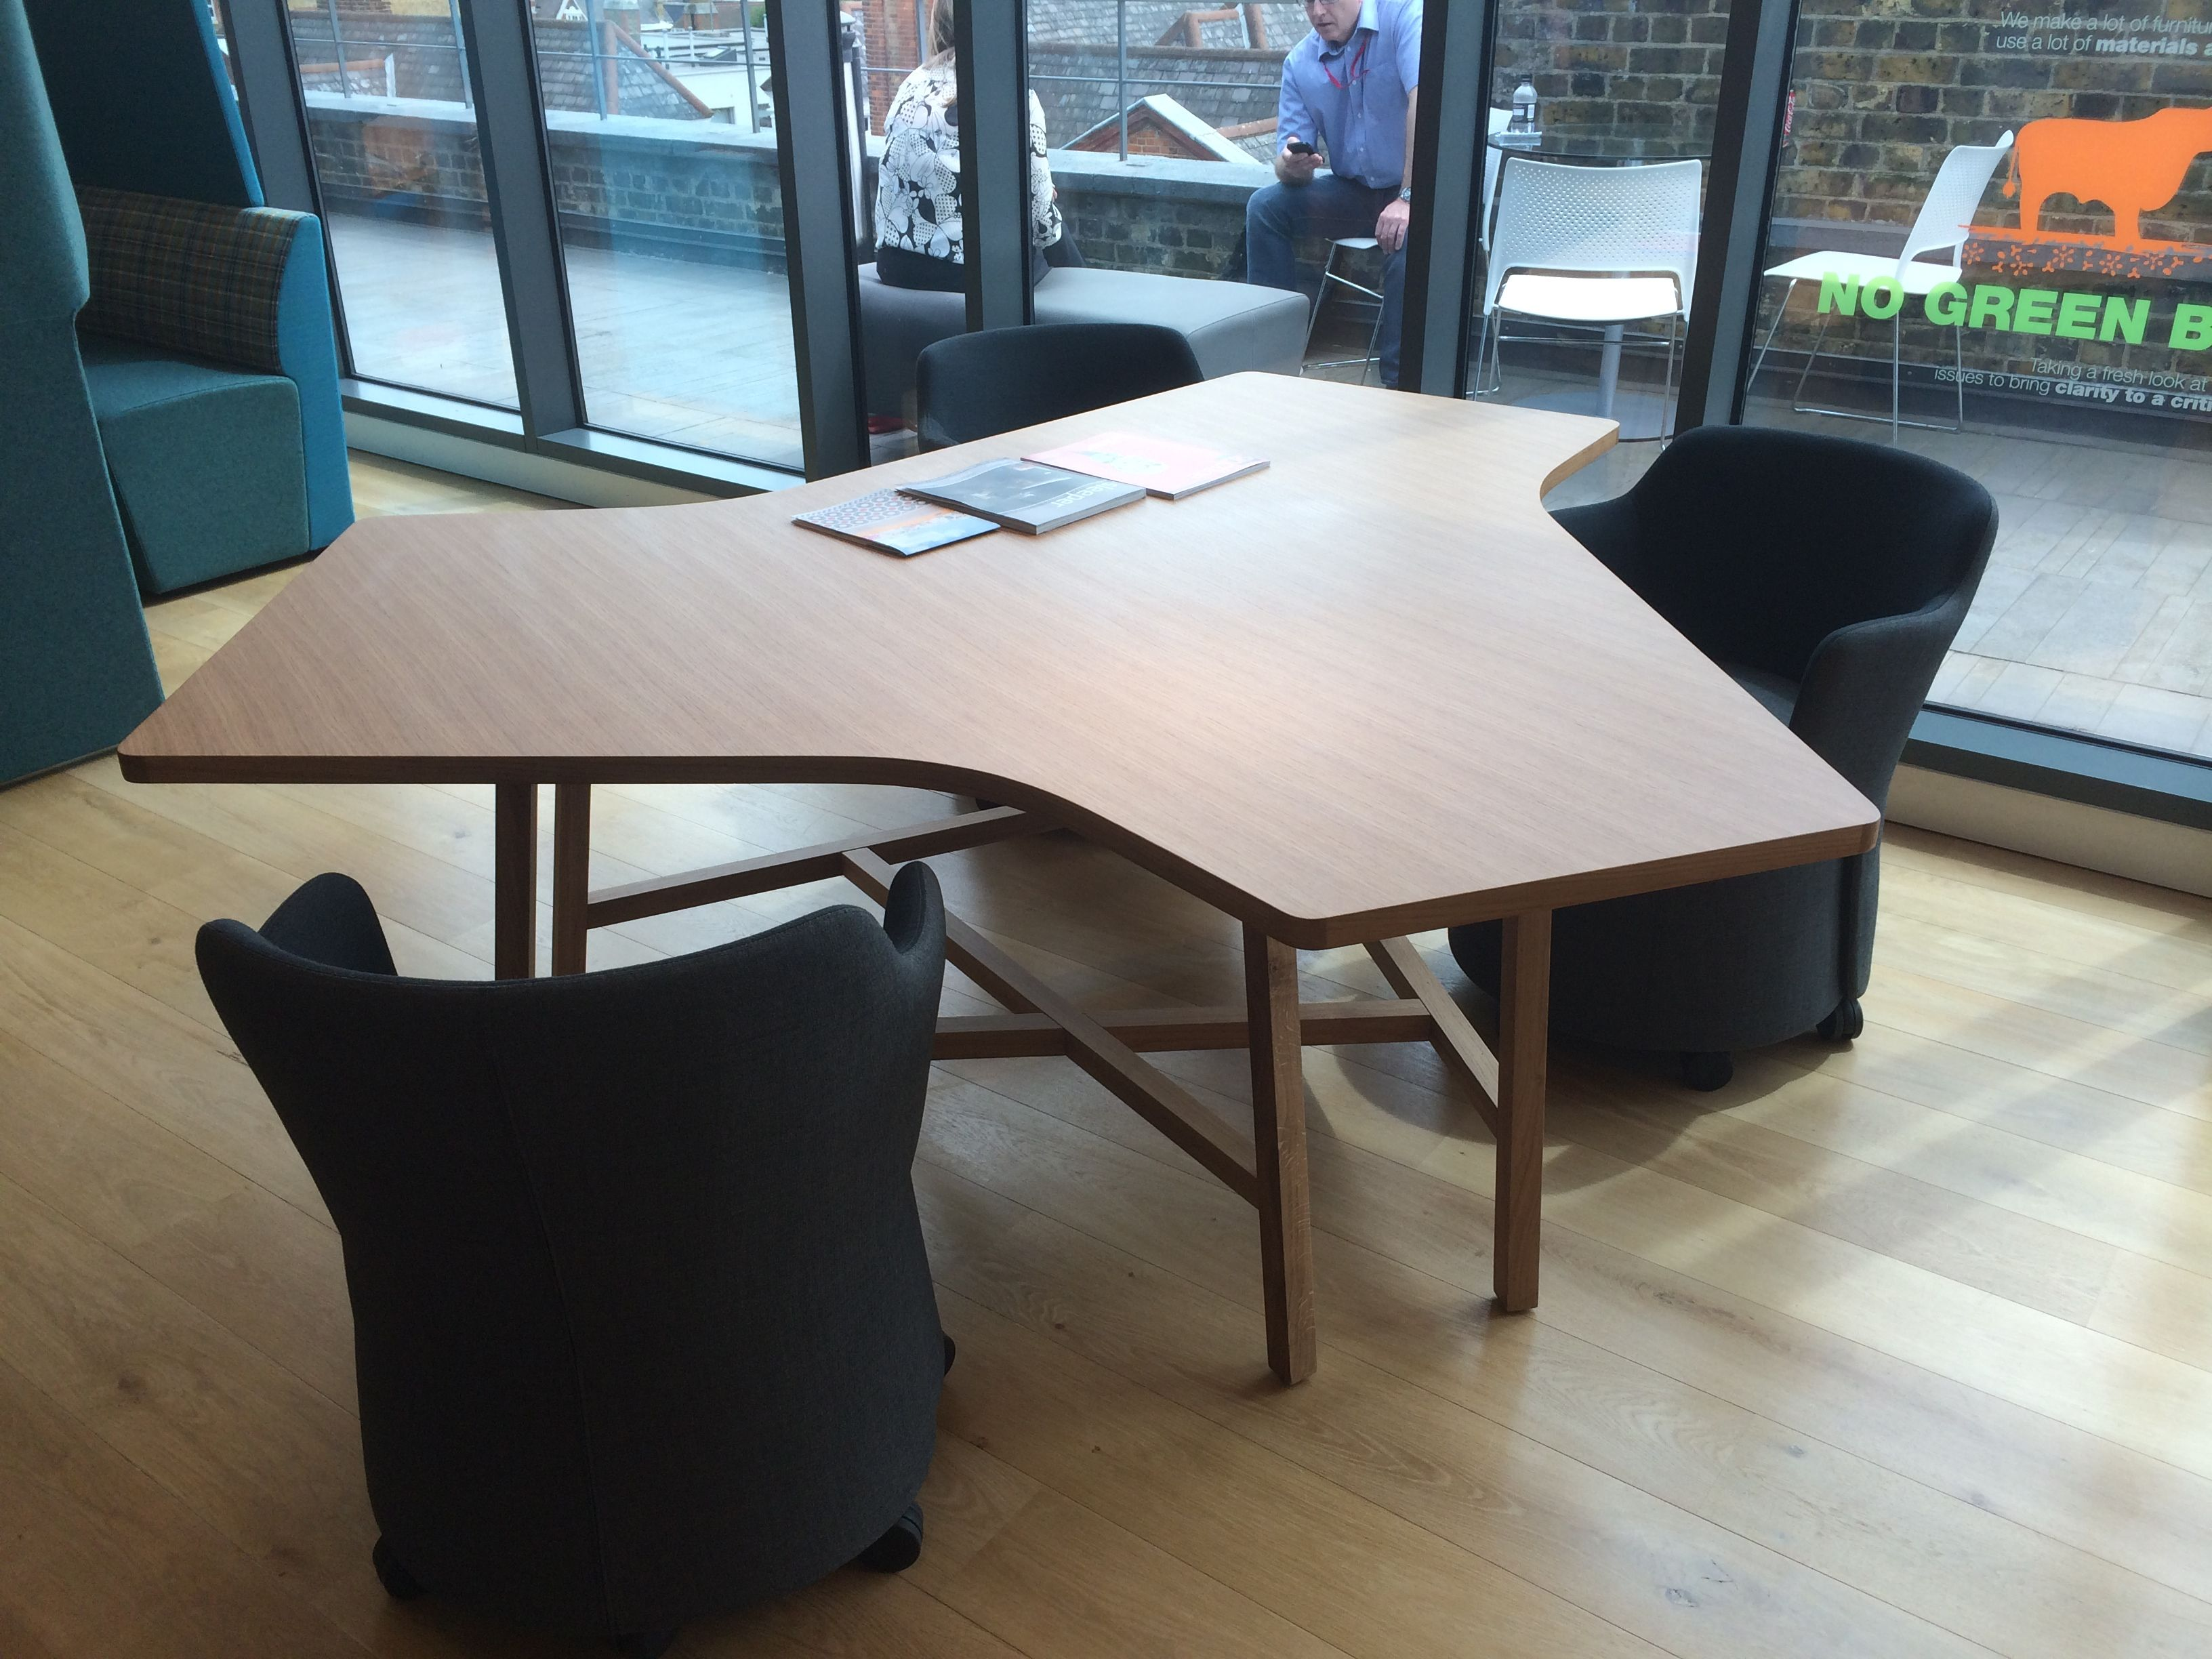 3rd space furniture from Bene. Parcs America diner. An attractive ...